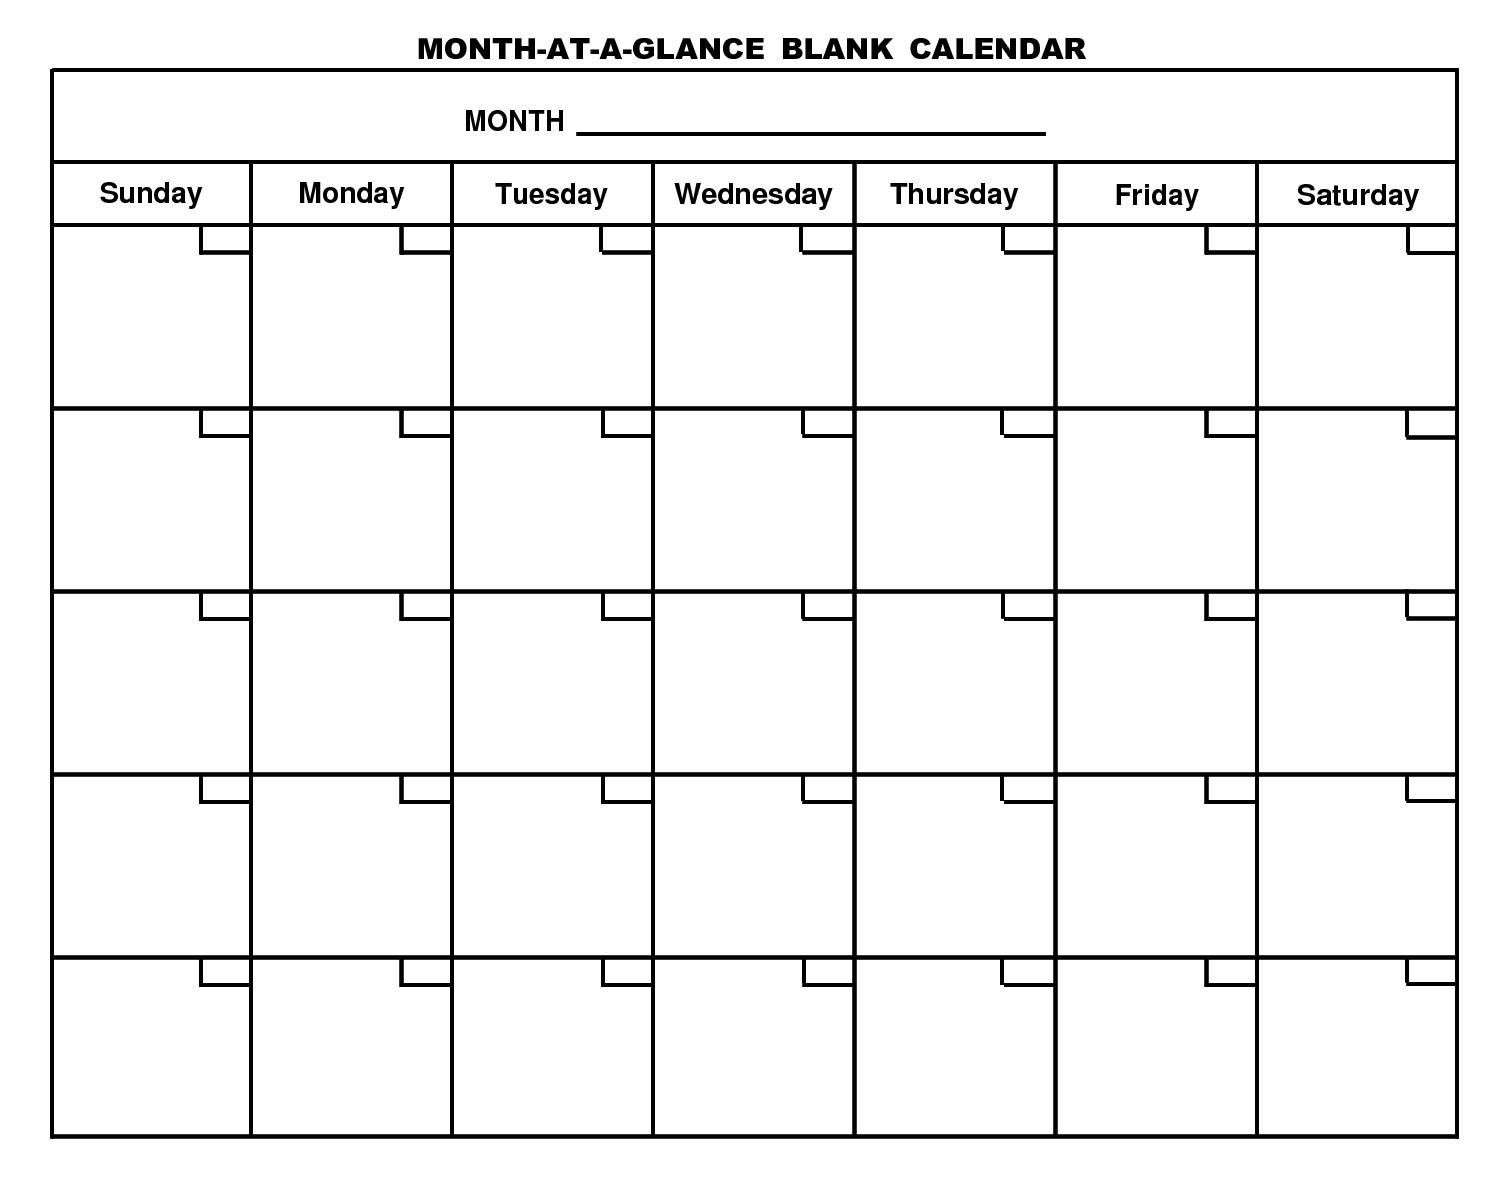 Free Printable Monthly Calendar With Large Boxes Skymaps-Month At A Glance Blank Calendar Template